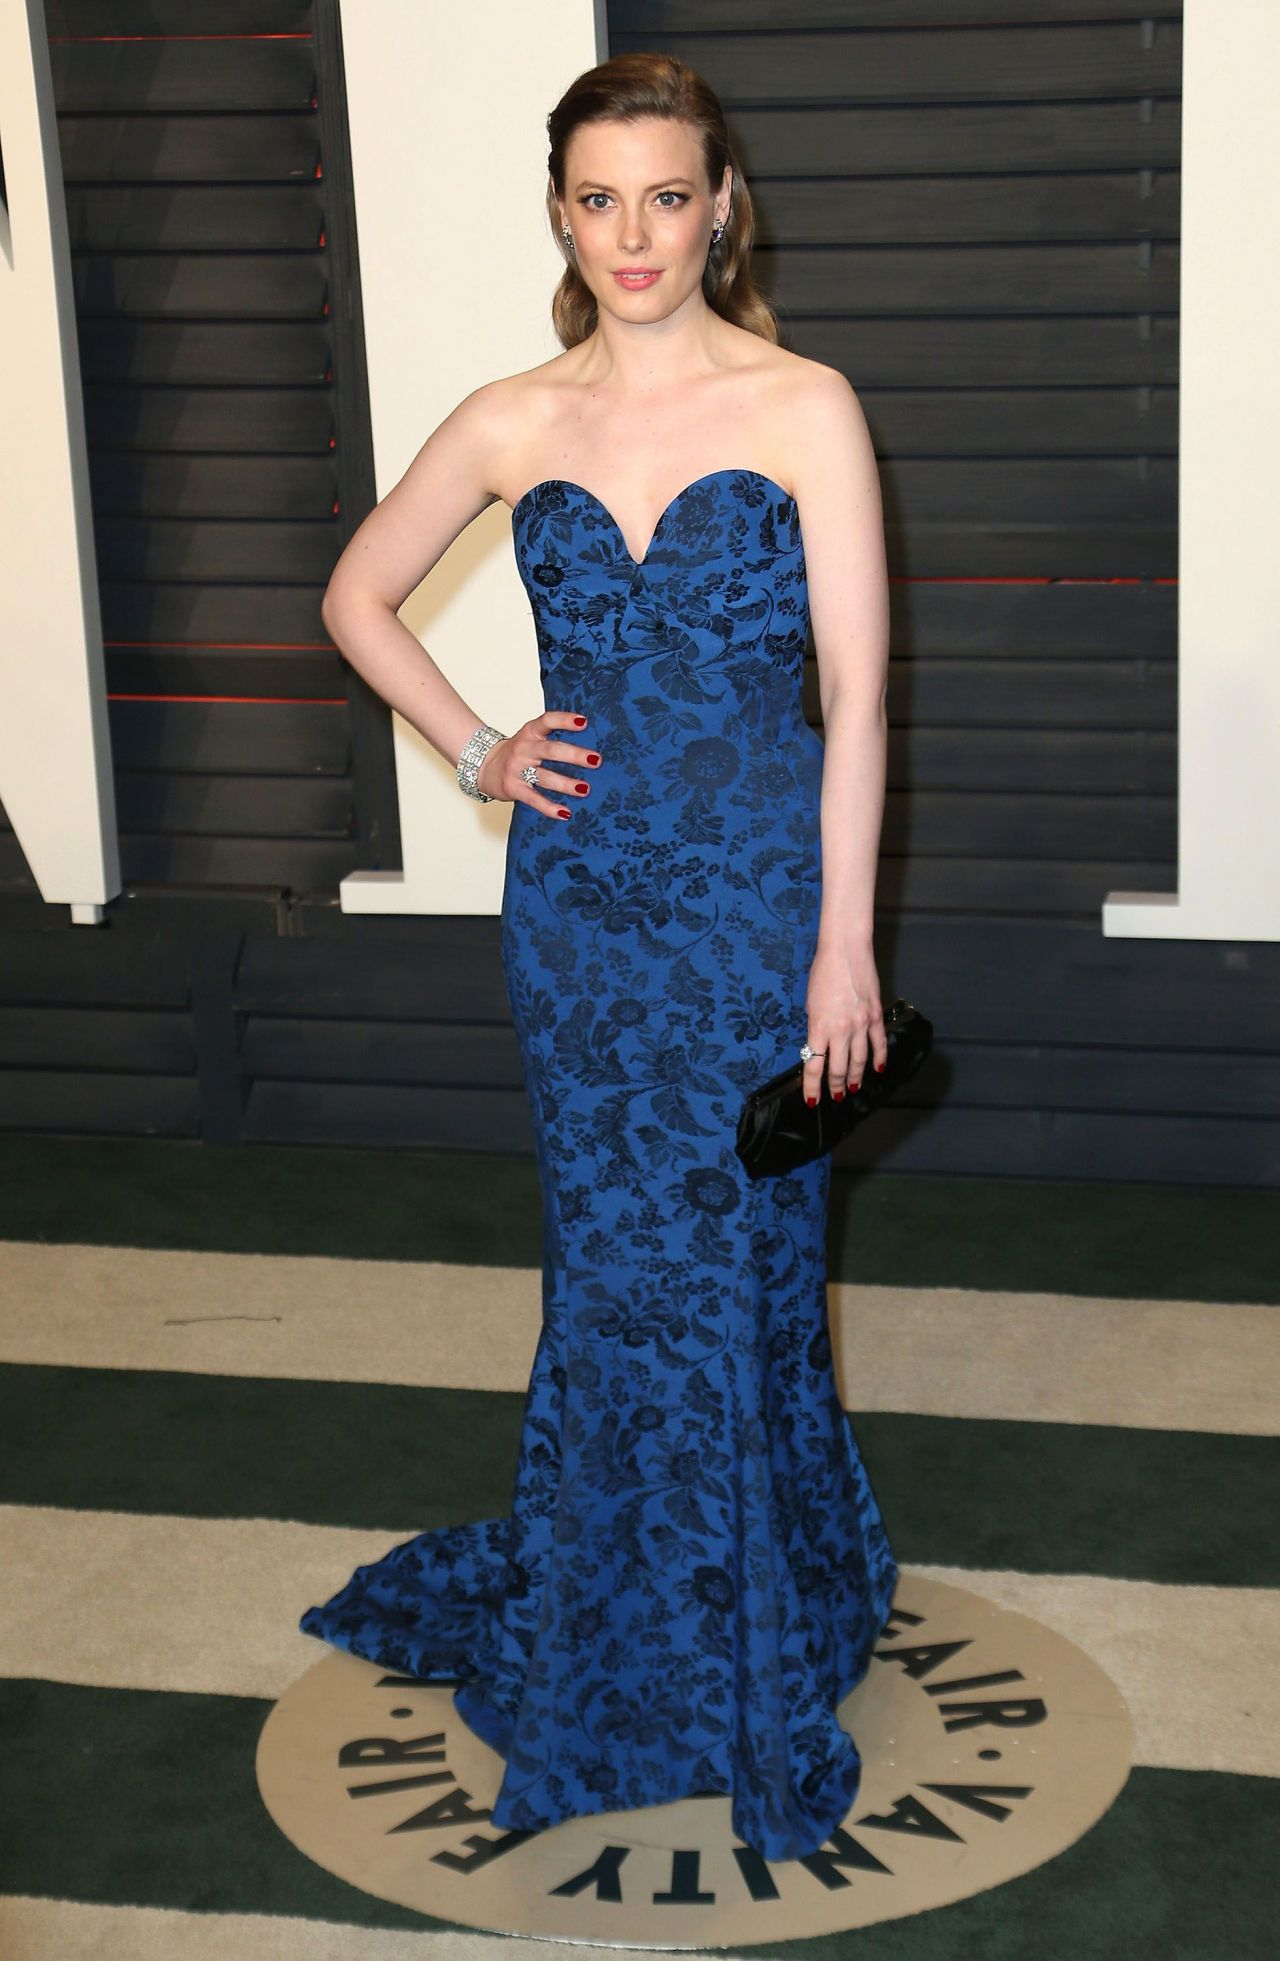 gillian-jacobs-2016-vanity-fair-oscar-party-in-beverly-hills-ca-2